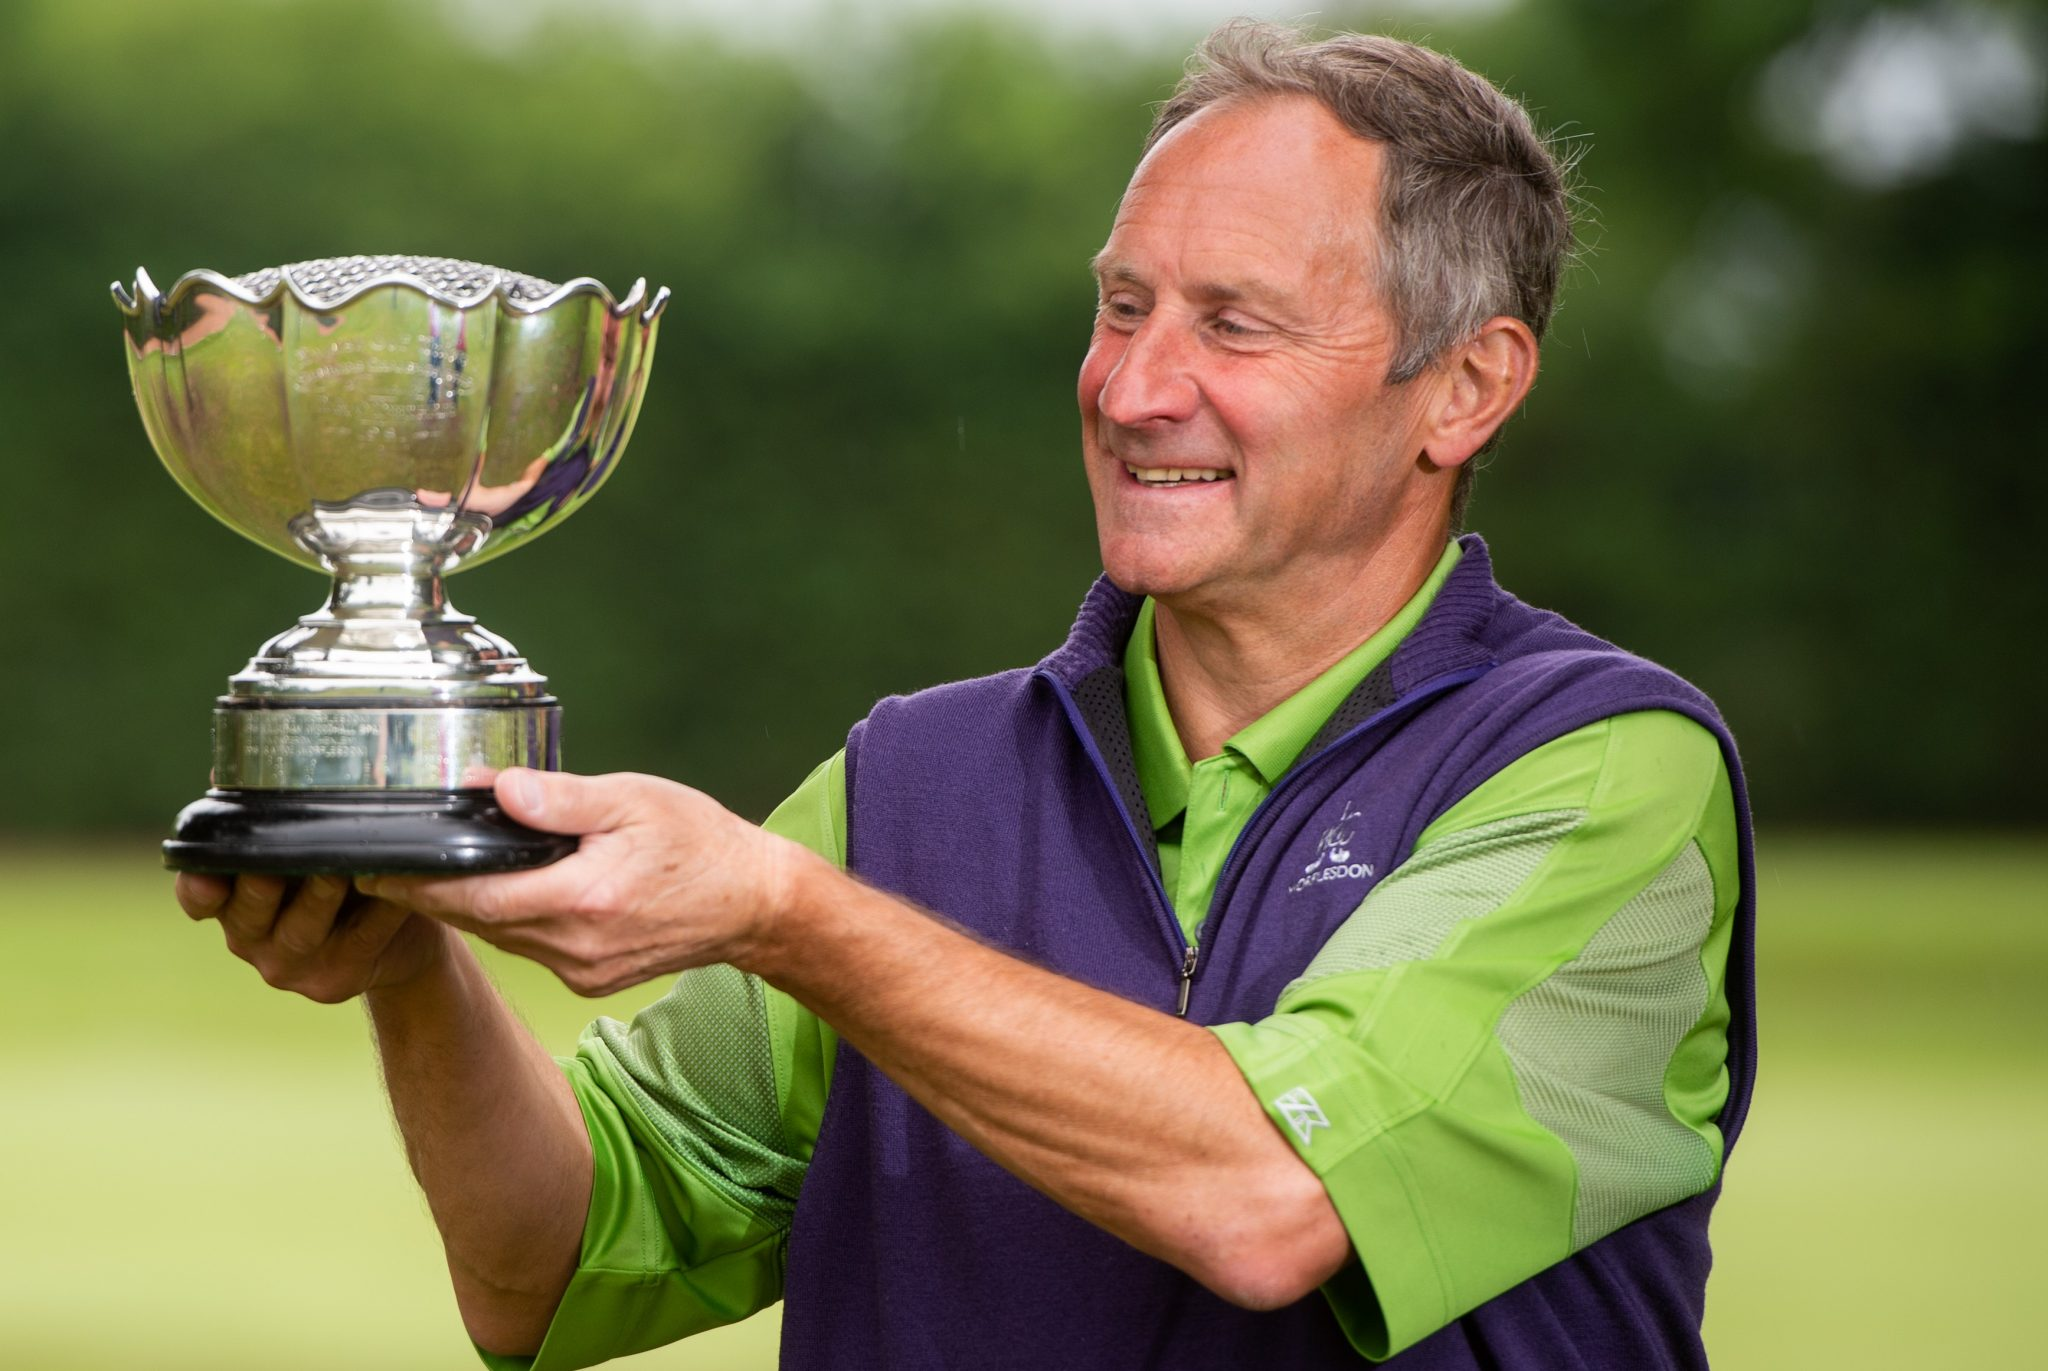 Defending English Seniors Champion Ian Attoe will be going for a hat-trick of successive wins at Woodhall Spa after his win in 2019 at Elsham and Holme Hall